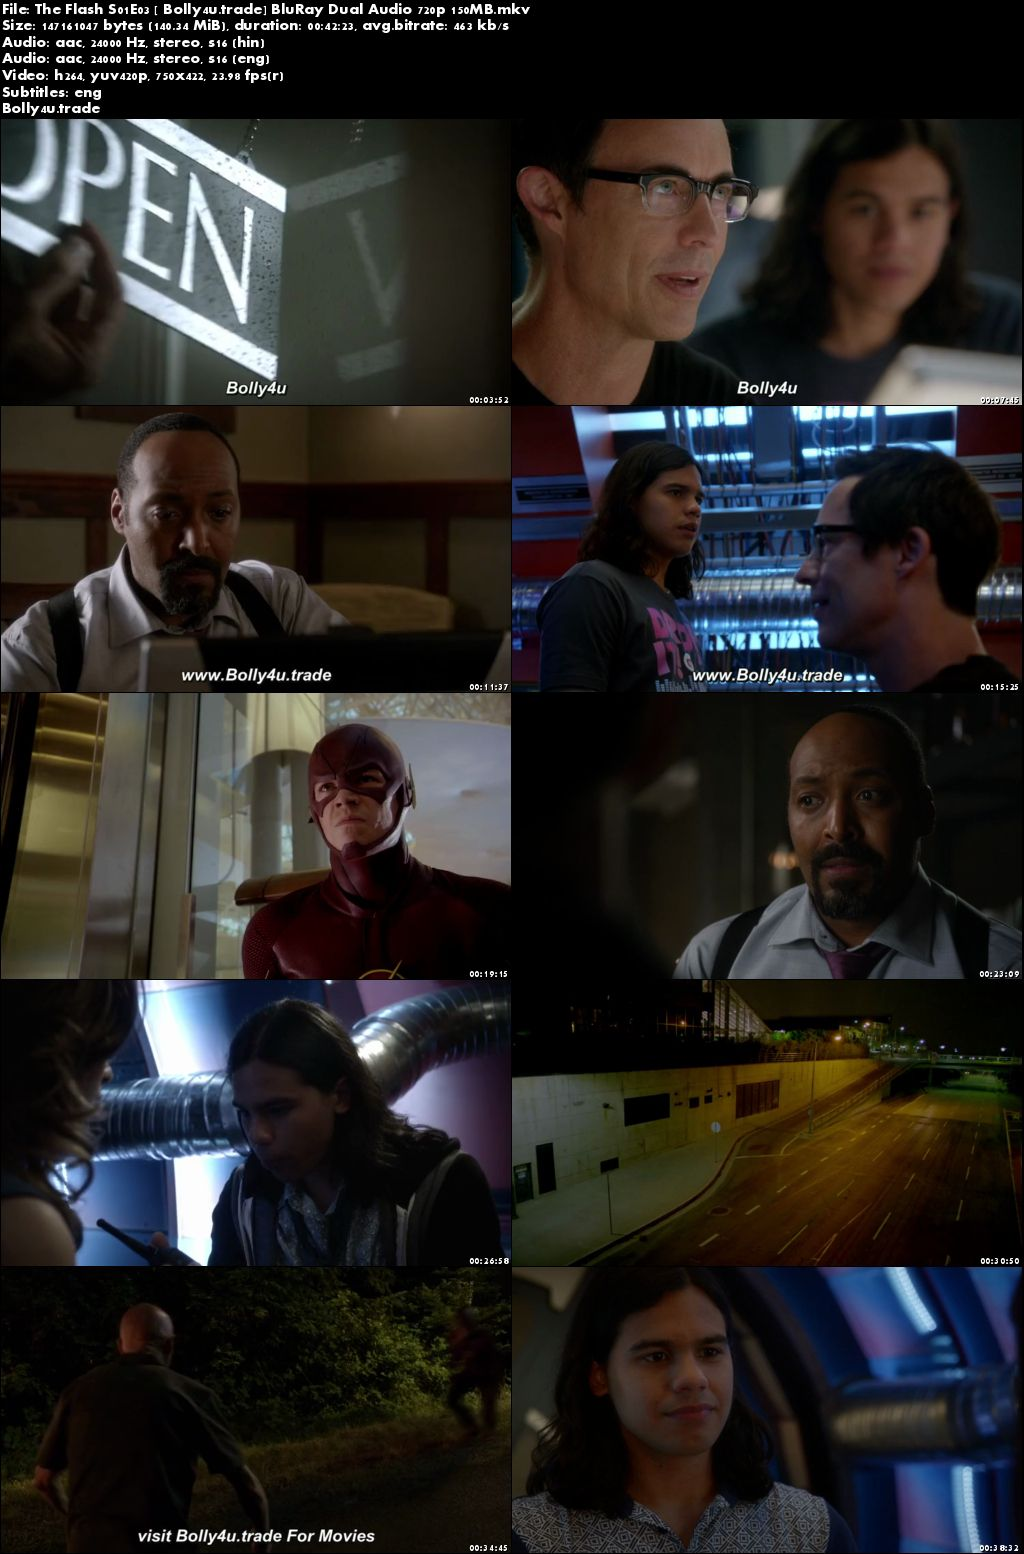 The Flash S01E03 BluRay 150MB Hindi Dual Audio 480p Download